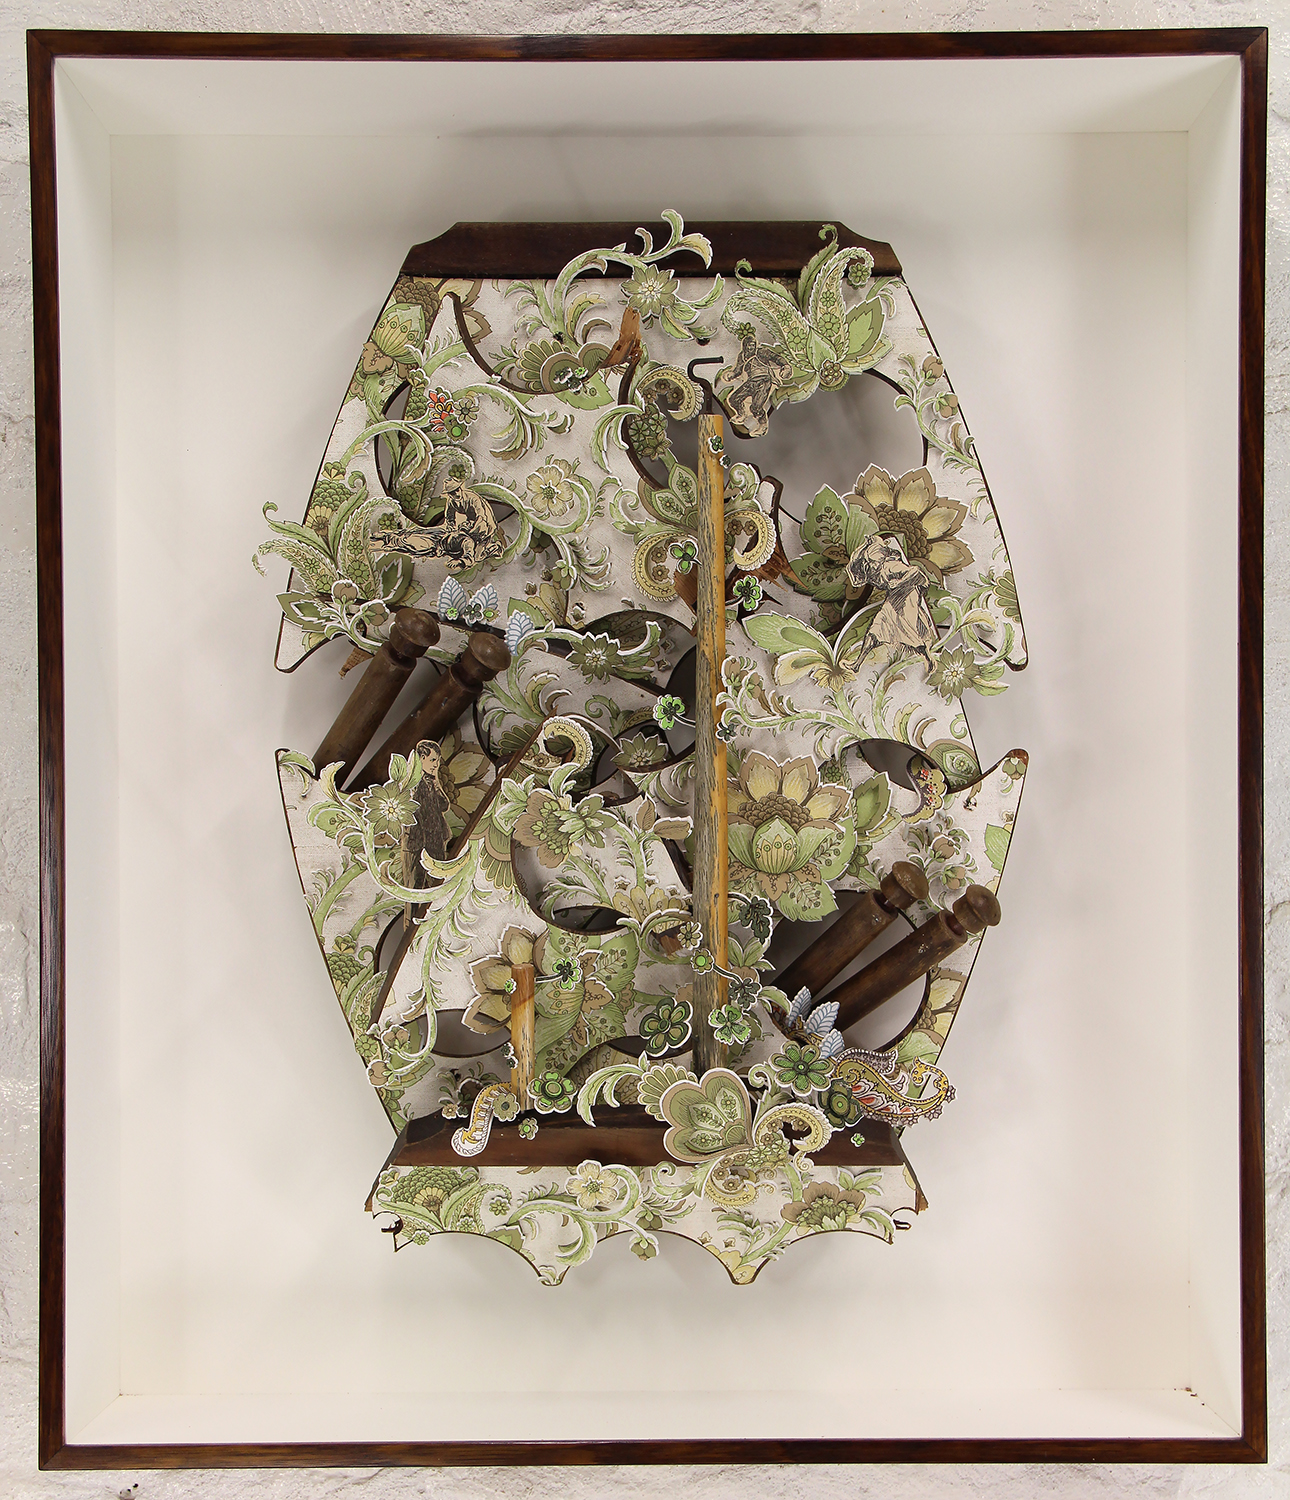 Dominic Kavanagh Flowers in the cellar 2015 Wall paper and vintage illustration cutouts, wire, discarded timber and plywood wire rack 74.5x64x15cm